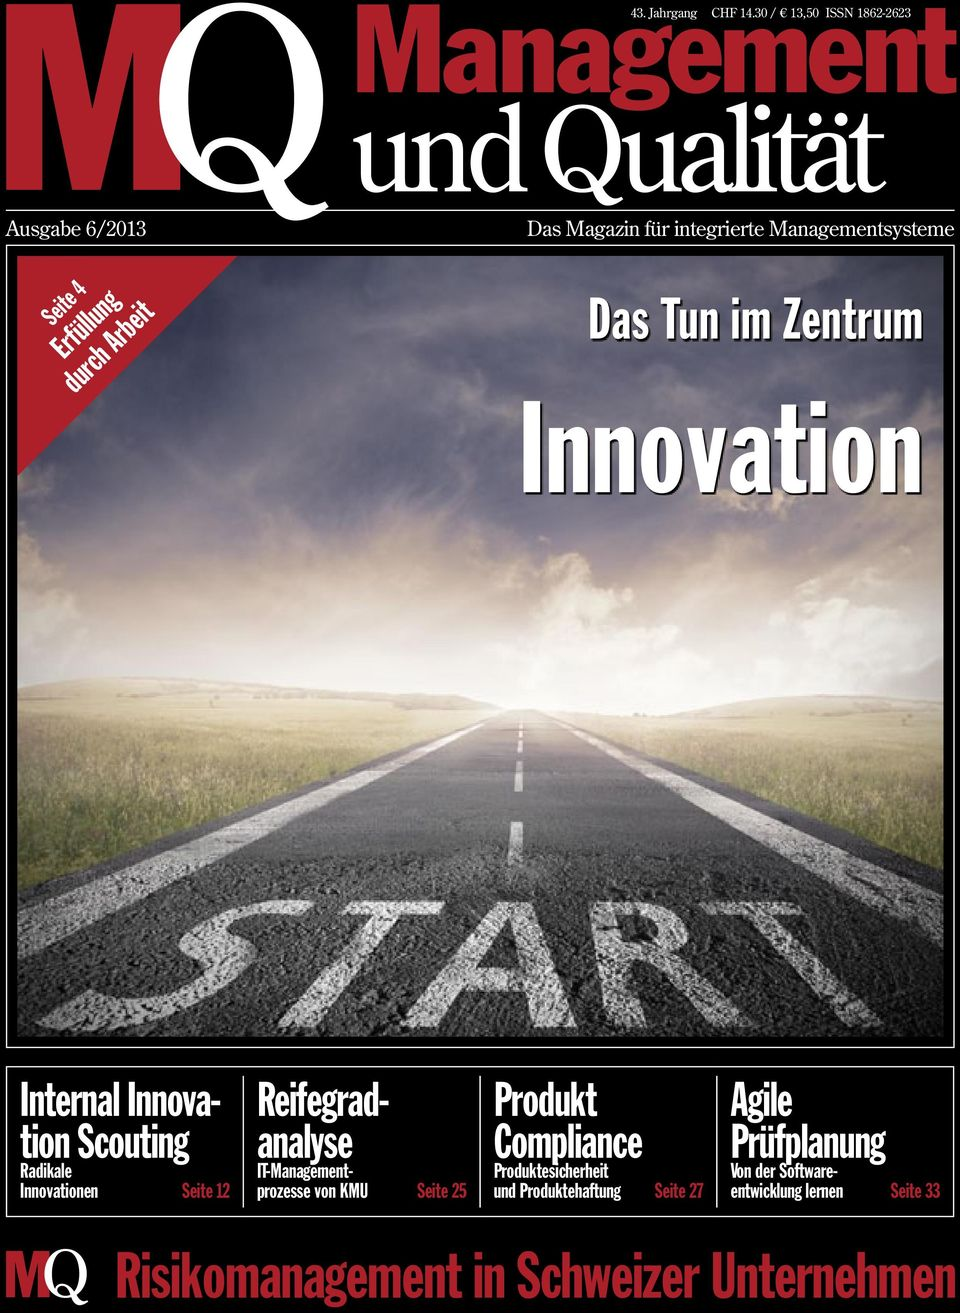 Tun im Zentrum Innovation Internal Innovation Scouting Radikale Innovationen Seite 12 Reifegradanalyse